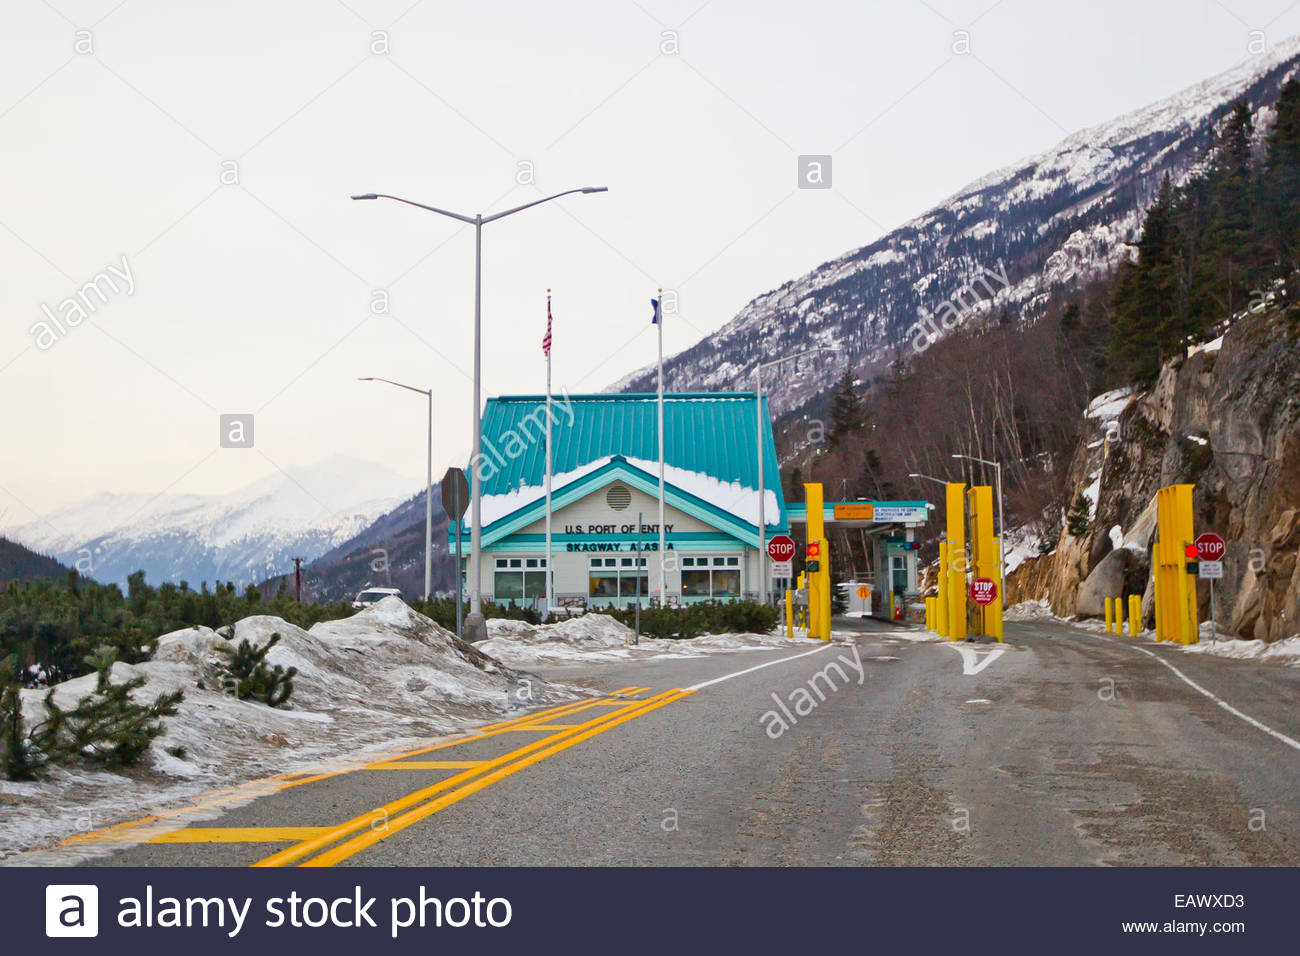 The American Customs and Immigration Security checkpoint  on the Klondike Highway at the U.S. and Canada border. - Stock Image